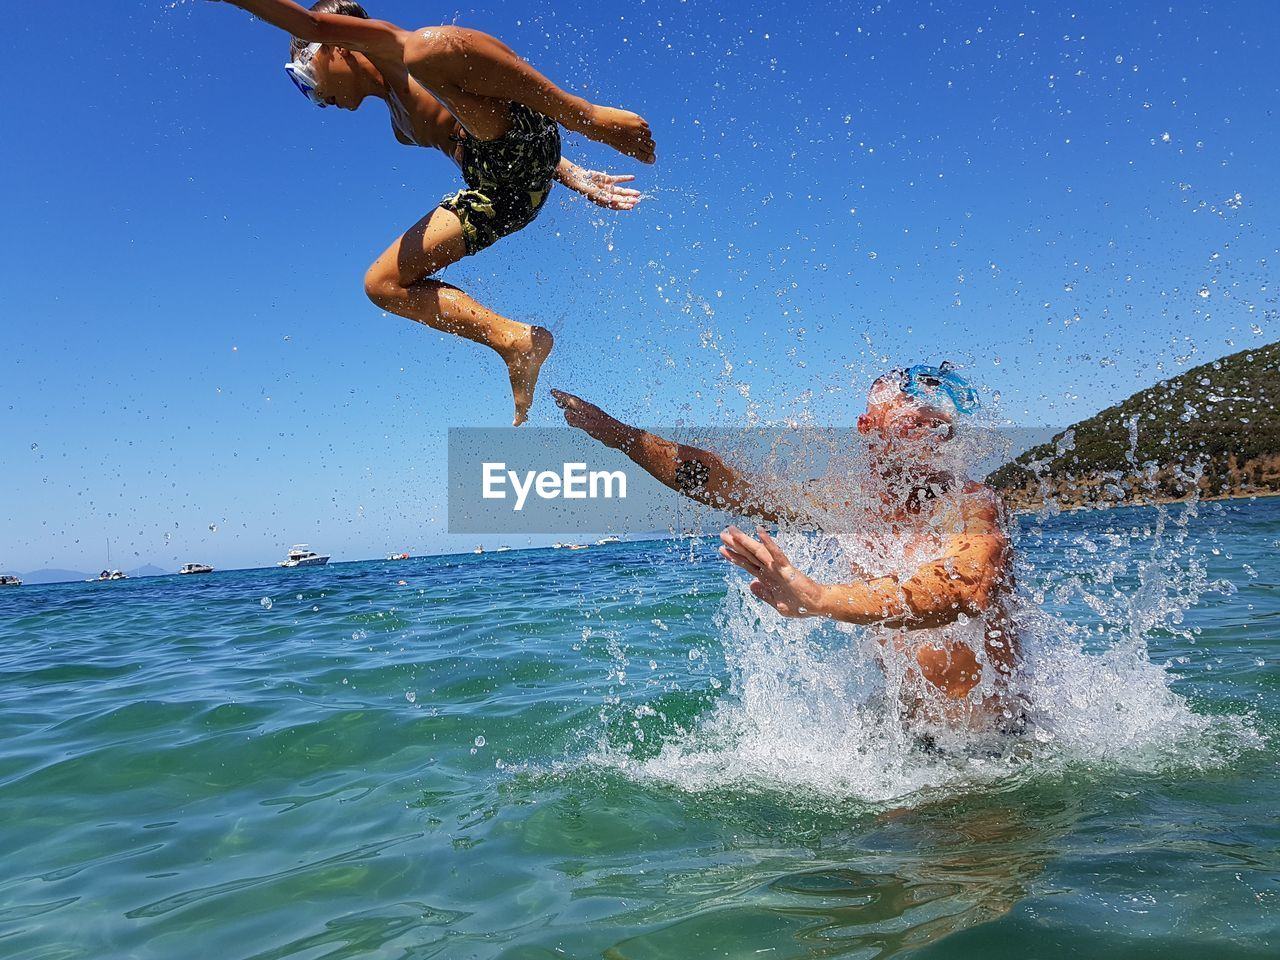 water, motion, splashing, lifestyles, real people, shirtless, men, sea, leisure activity, sky, fun, enjoyment, two people, nature, clear sky, jumping, day, people, mid-air, outdoors, positive emotion, human arm